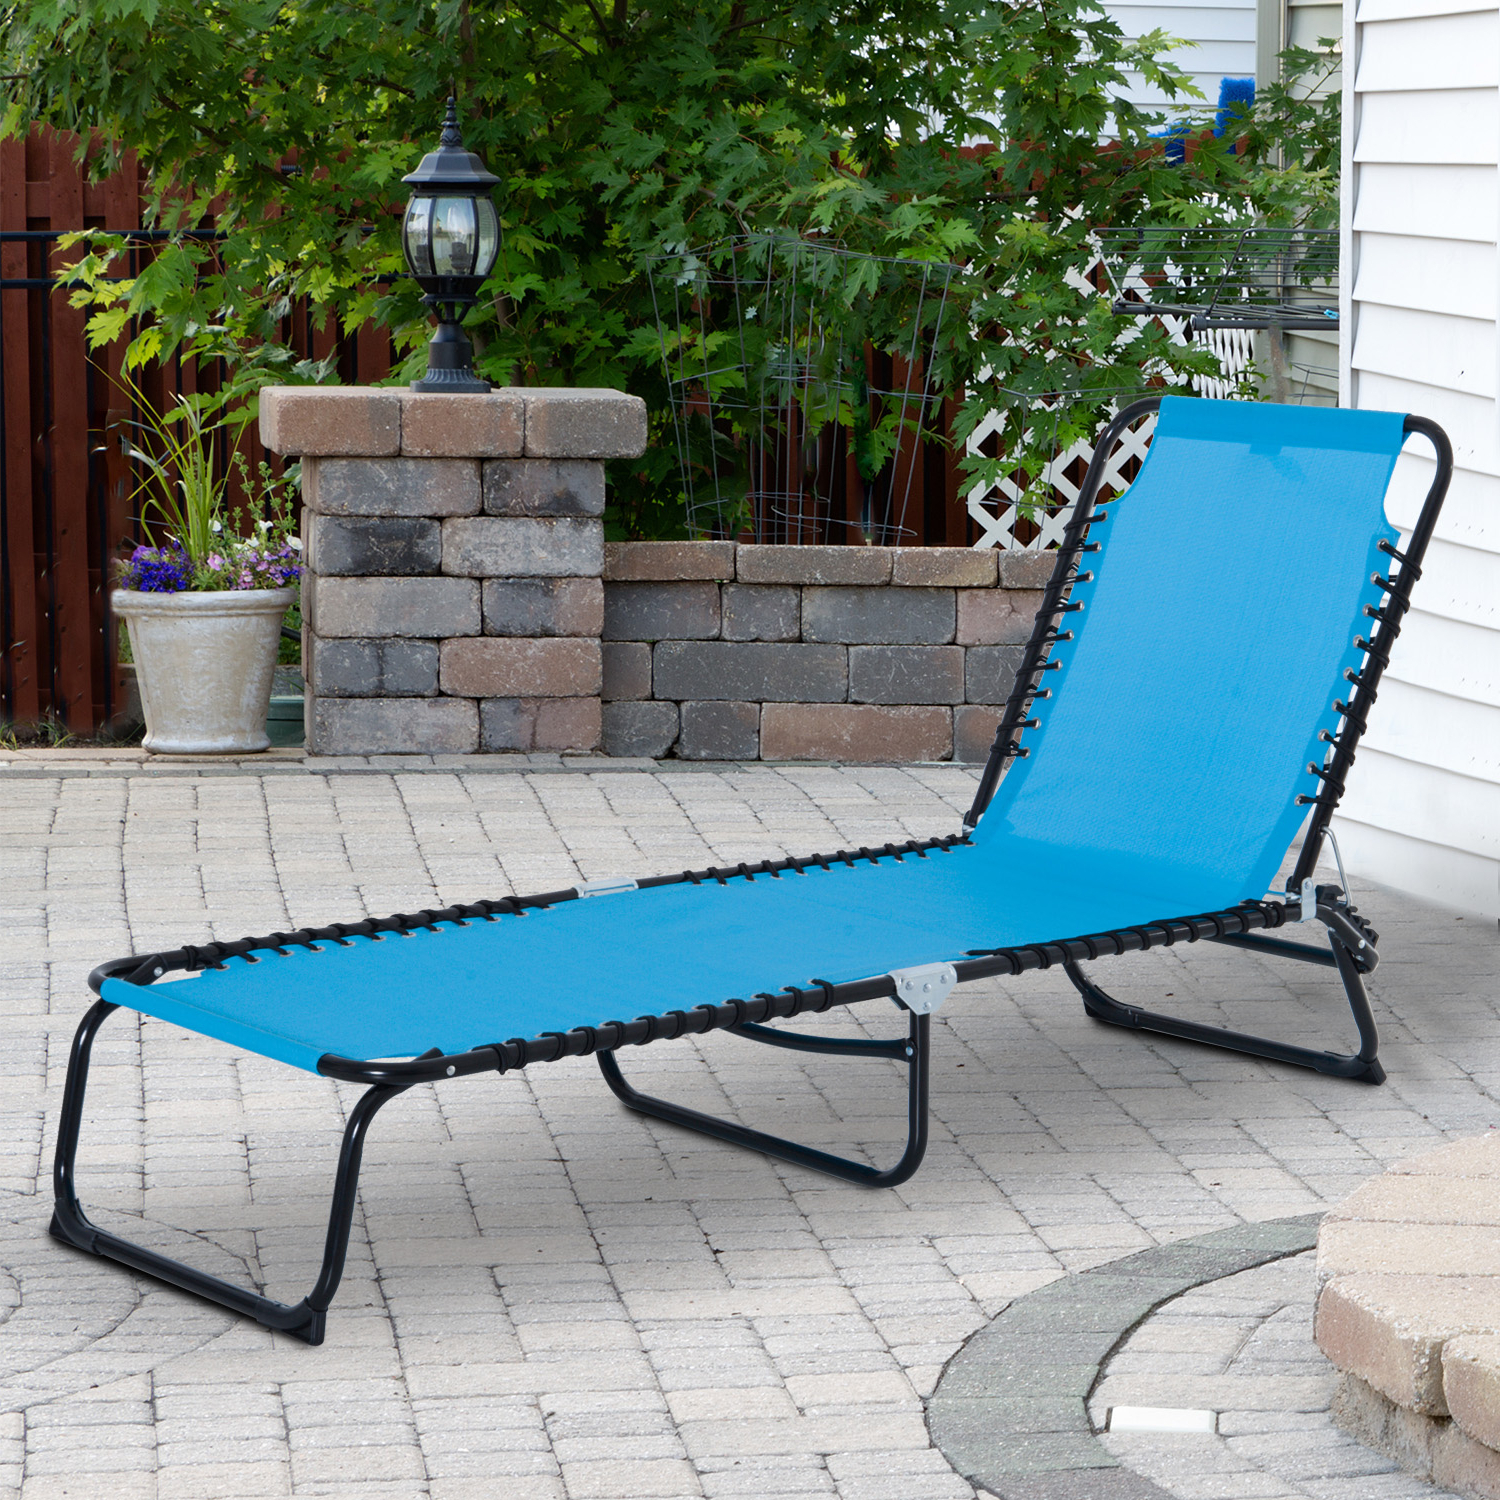 Well Known 3 Position Portable Reclining Beach Chaise Lounges Intended For Details About 3 Position Portable Reclining Beach Chaise Lounge Adjustable  Sleeping Light Blue (Gallery 9 of 25)